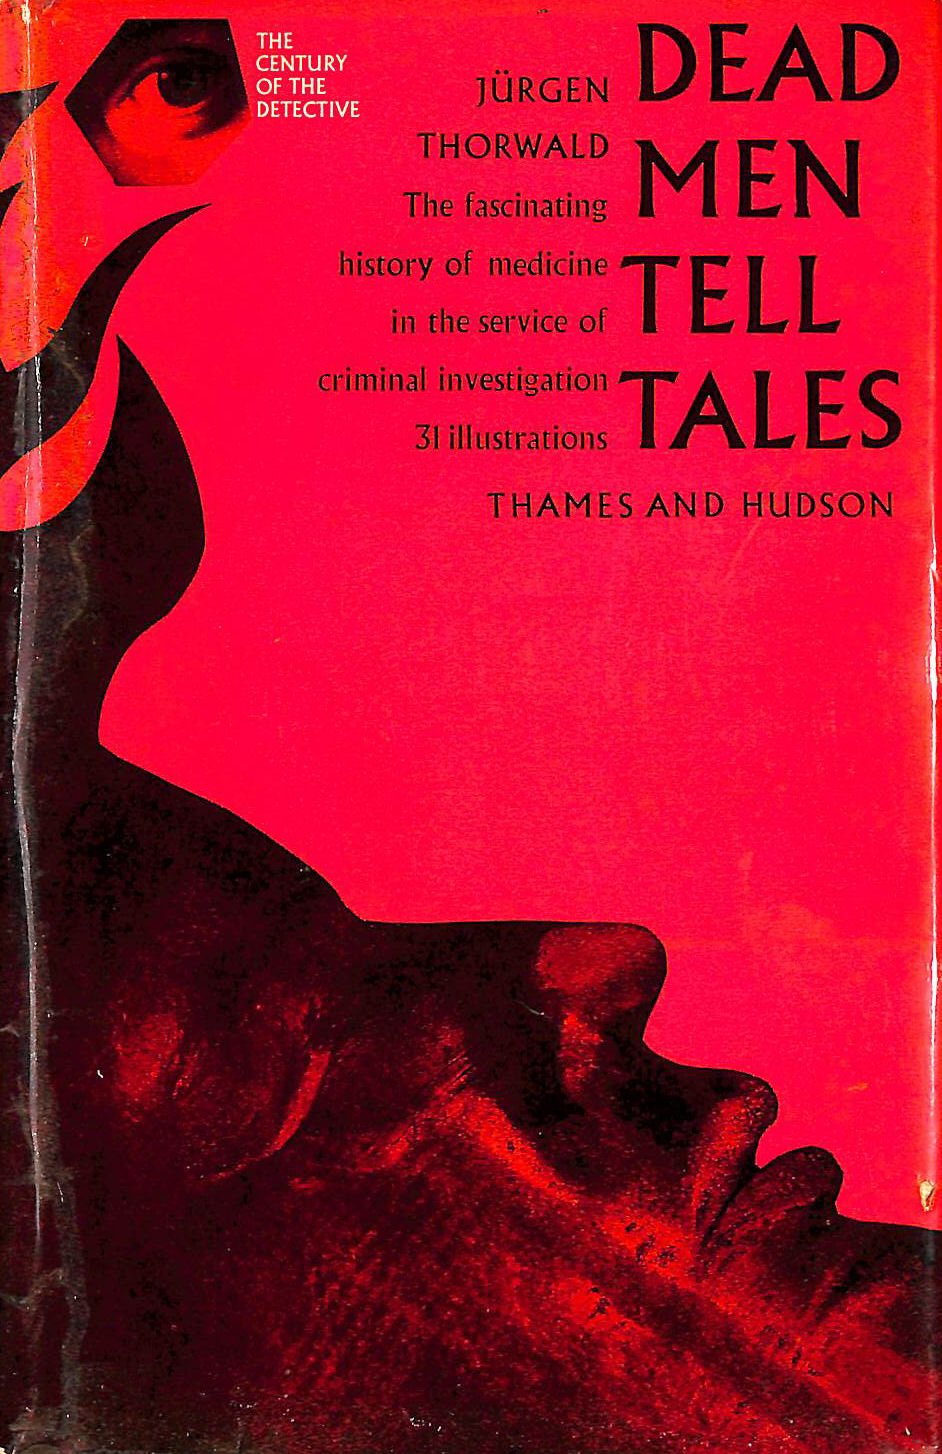 Image for Dead Men Tell Tales (Century of the Detective S.)